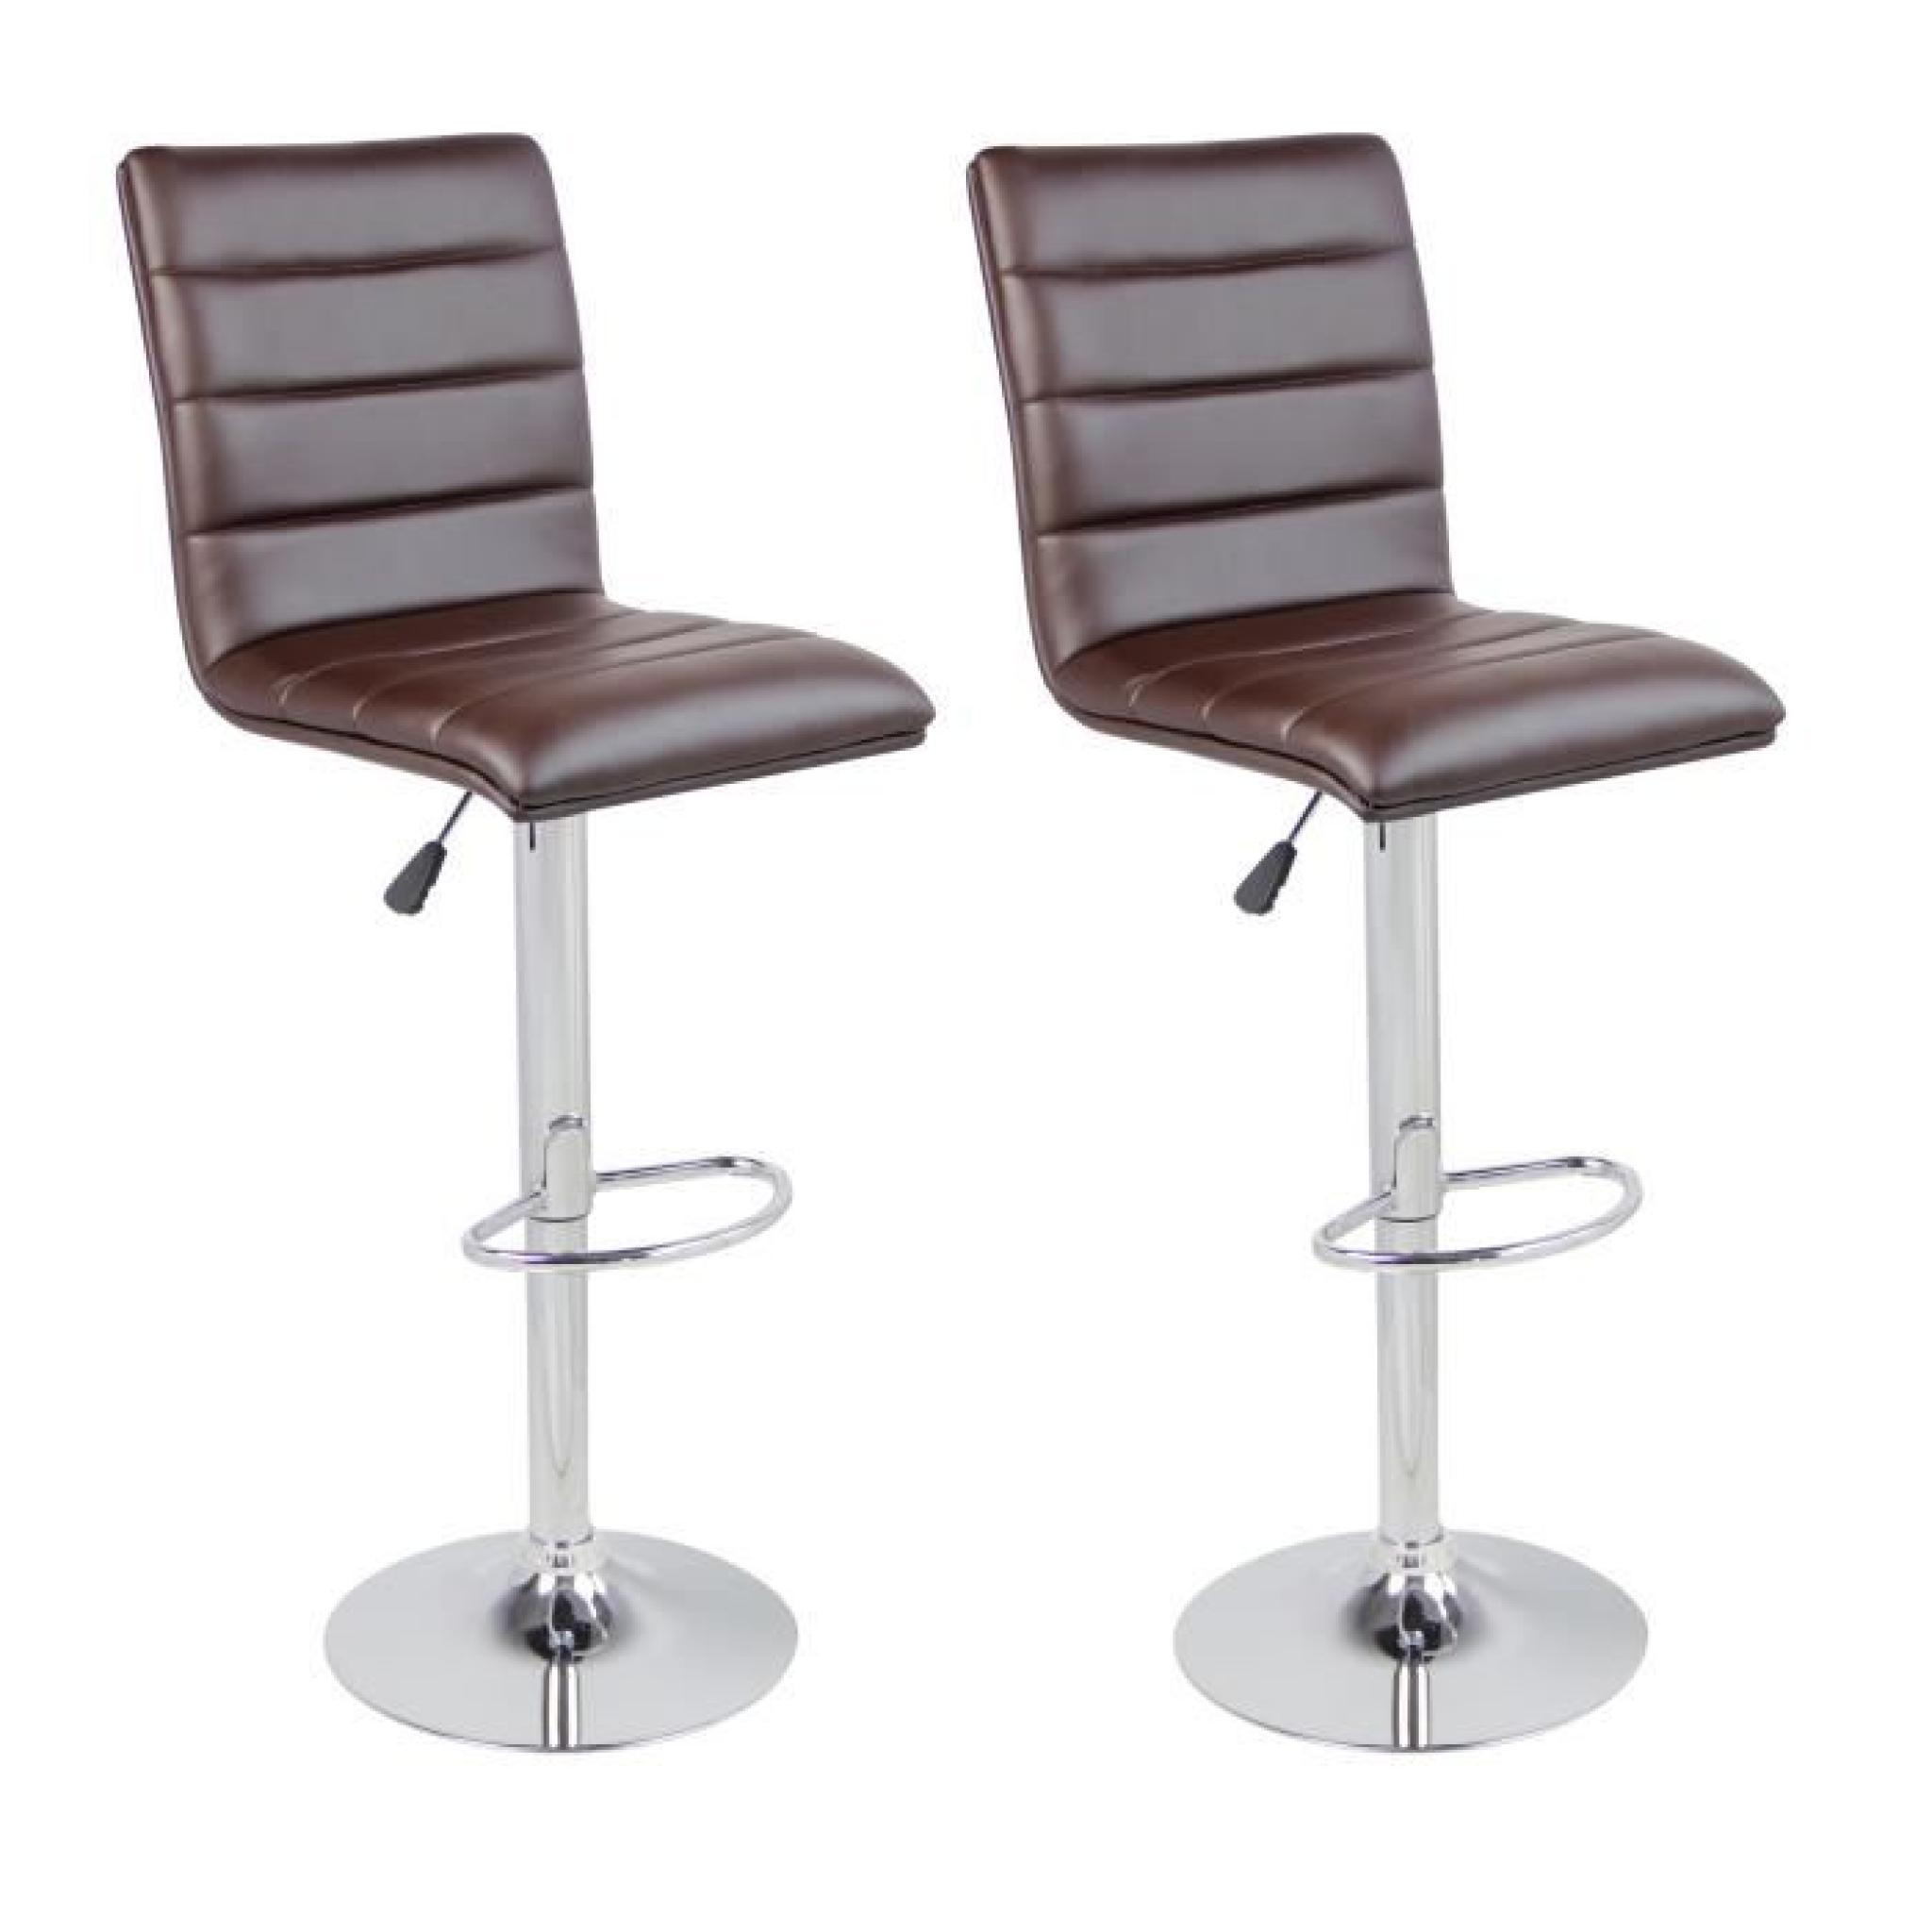 Tabouret de bar Swing chocolat (lot de 2)